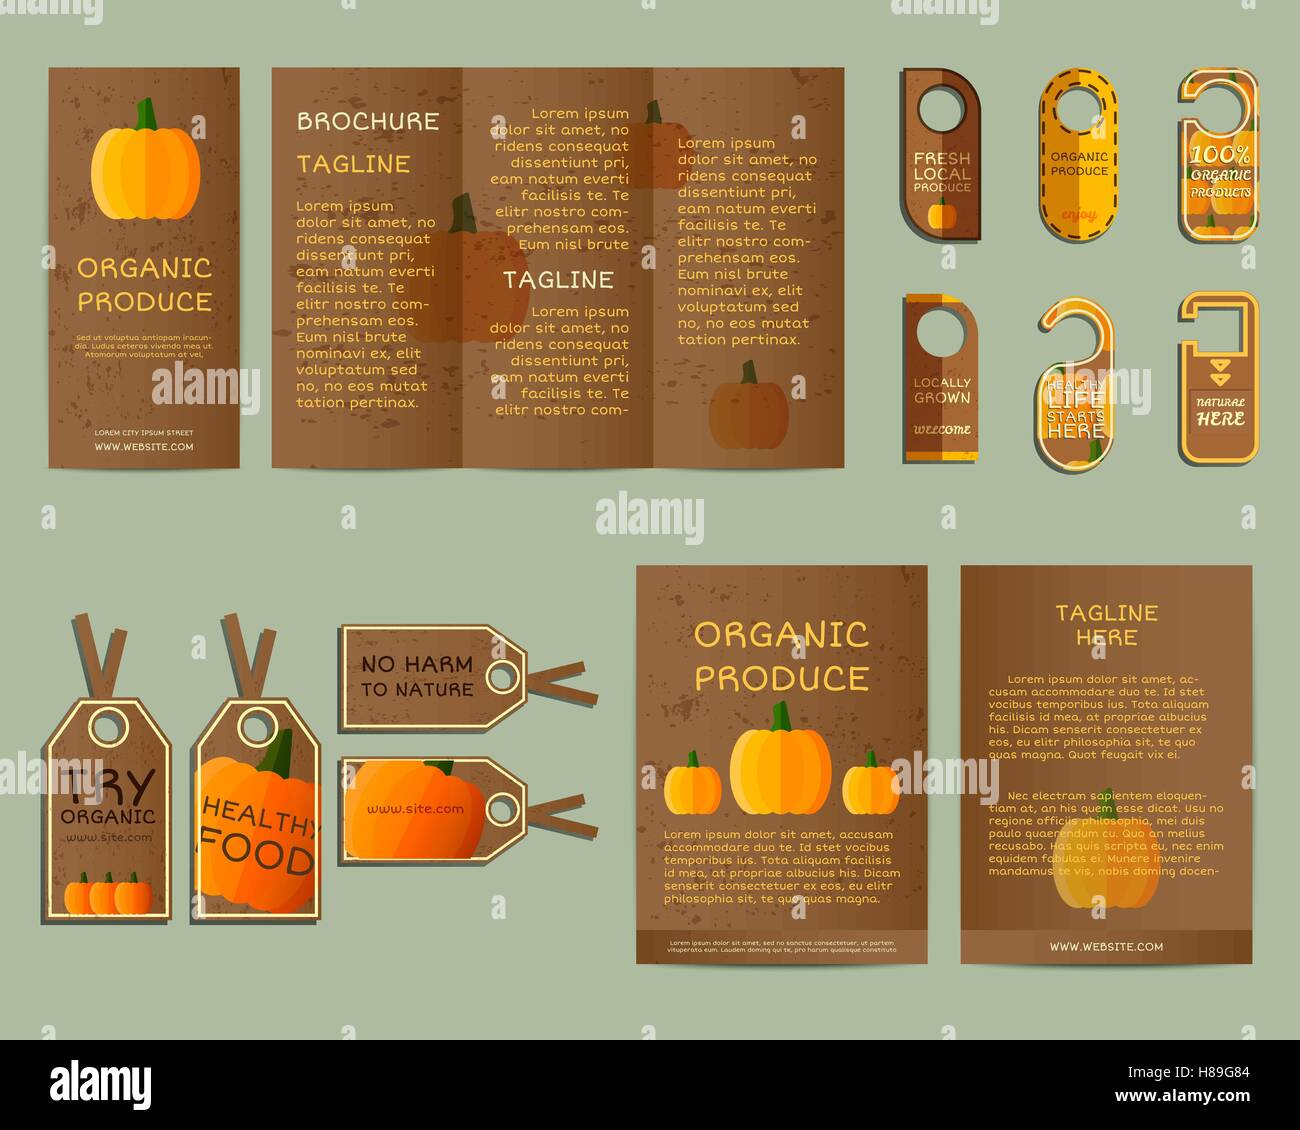 Corporate Graphic Design Natural Business Corporate Identity Design With Pumpkin Branding